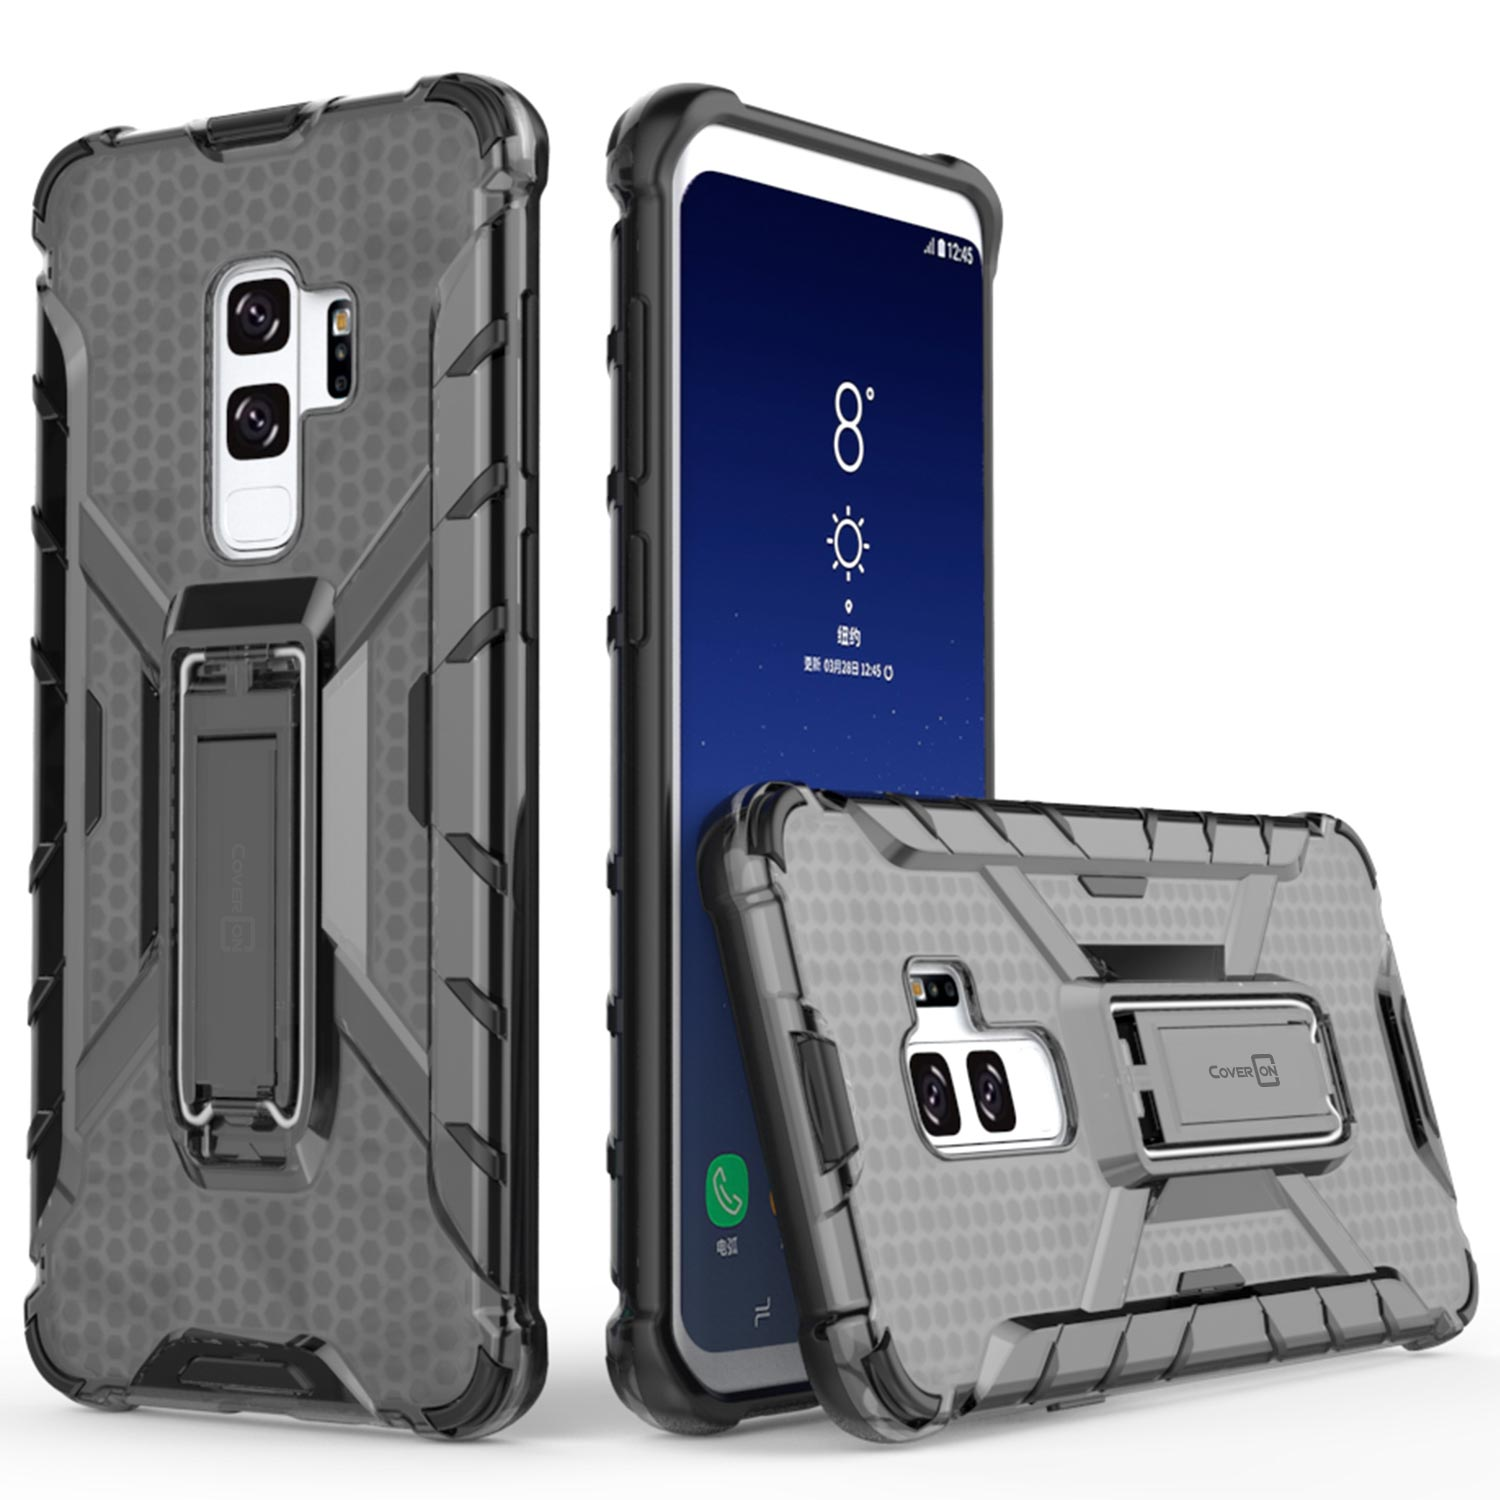 CoverON Samsung Galaxy S9 Plus Case, Hive Series Hard Hybrid Phone Cover with Kickstand